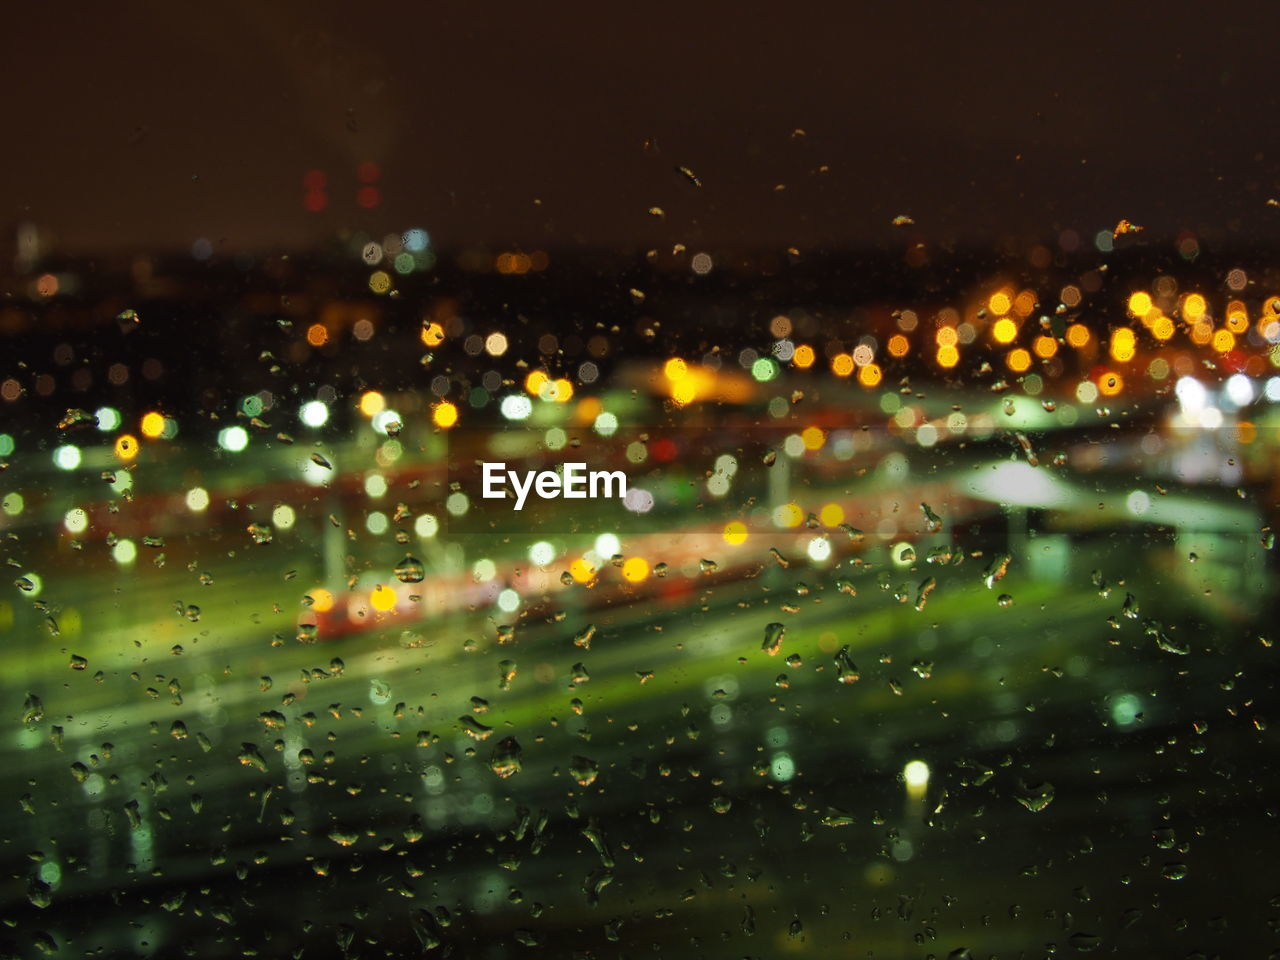 Water Drops On Glass Window At Night